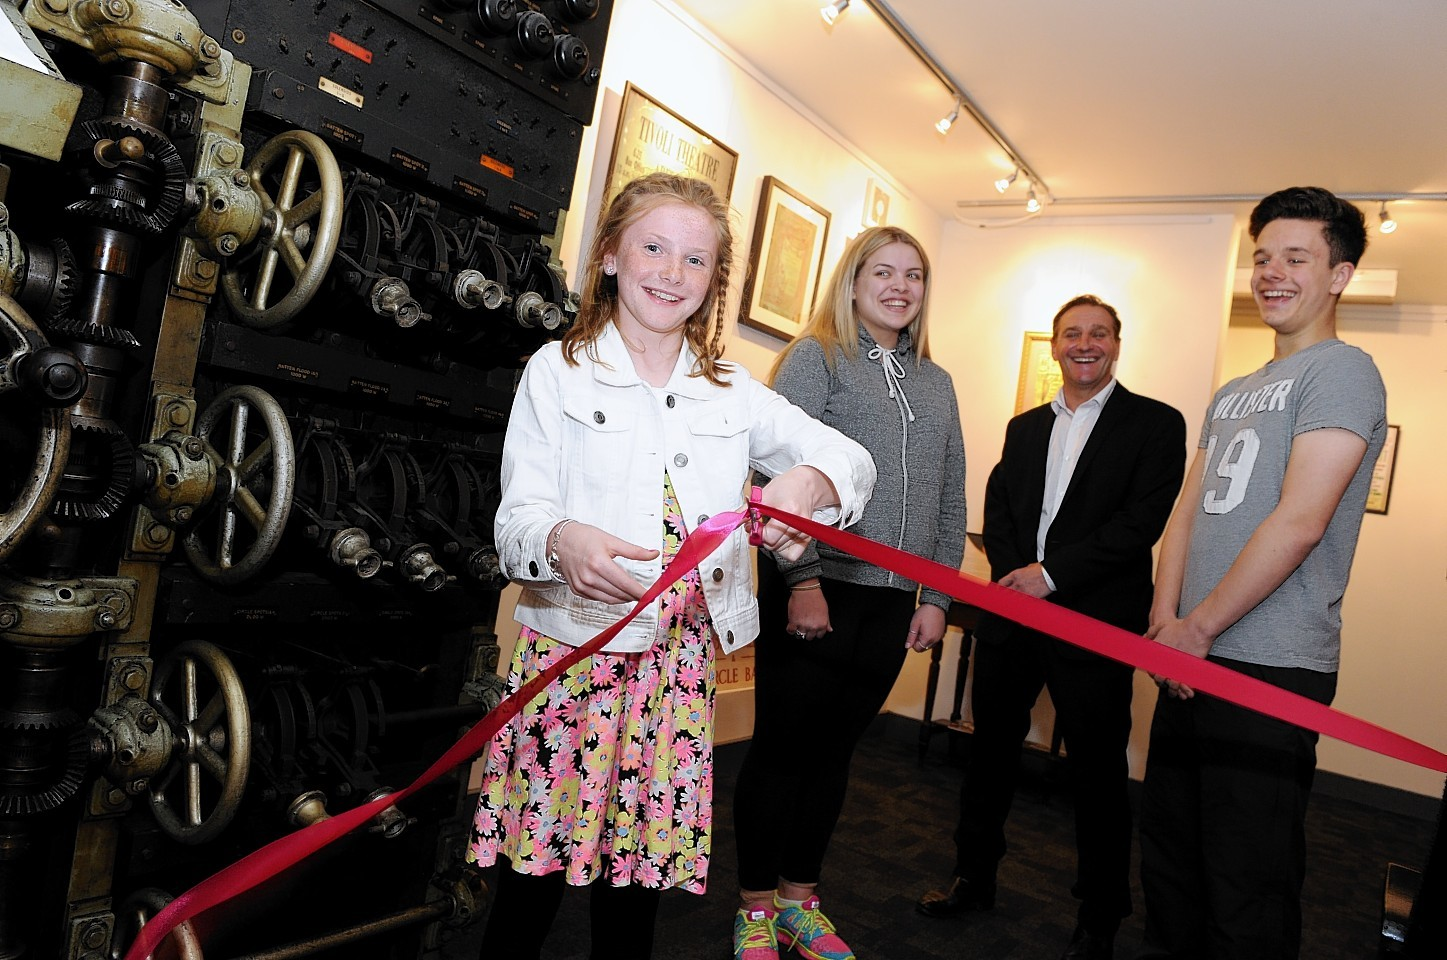 (FROM LEFT) Member of Aberdeen Youth Musical Theatre juniors, Holly Hendry, opening the new Tivoli Theatre museum with AYMT member Indya Greig, managing director Brian Hendry and AYMT member Joe Reid looking on.  Picture by KEVIN EMSLIE